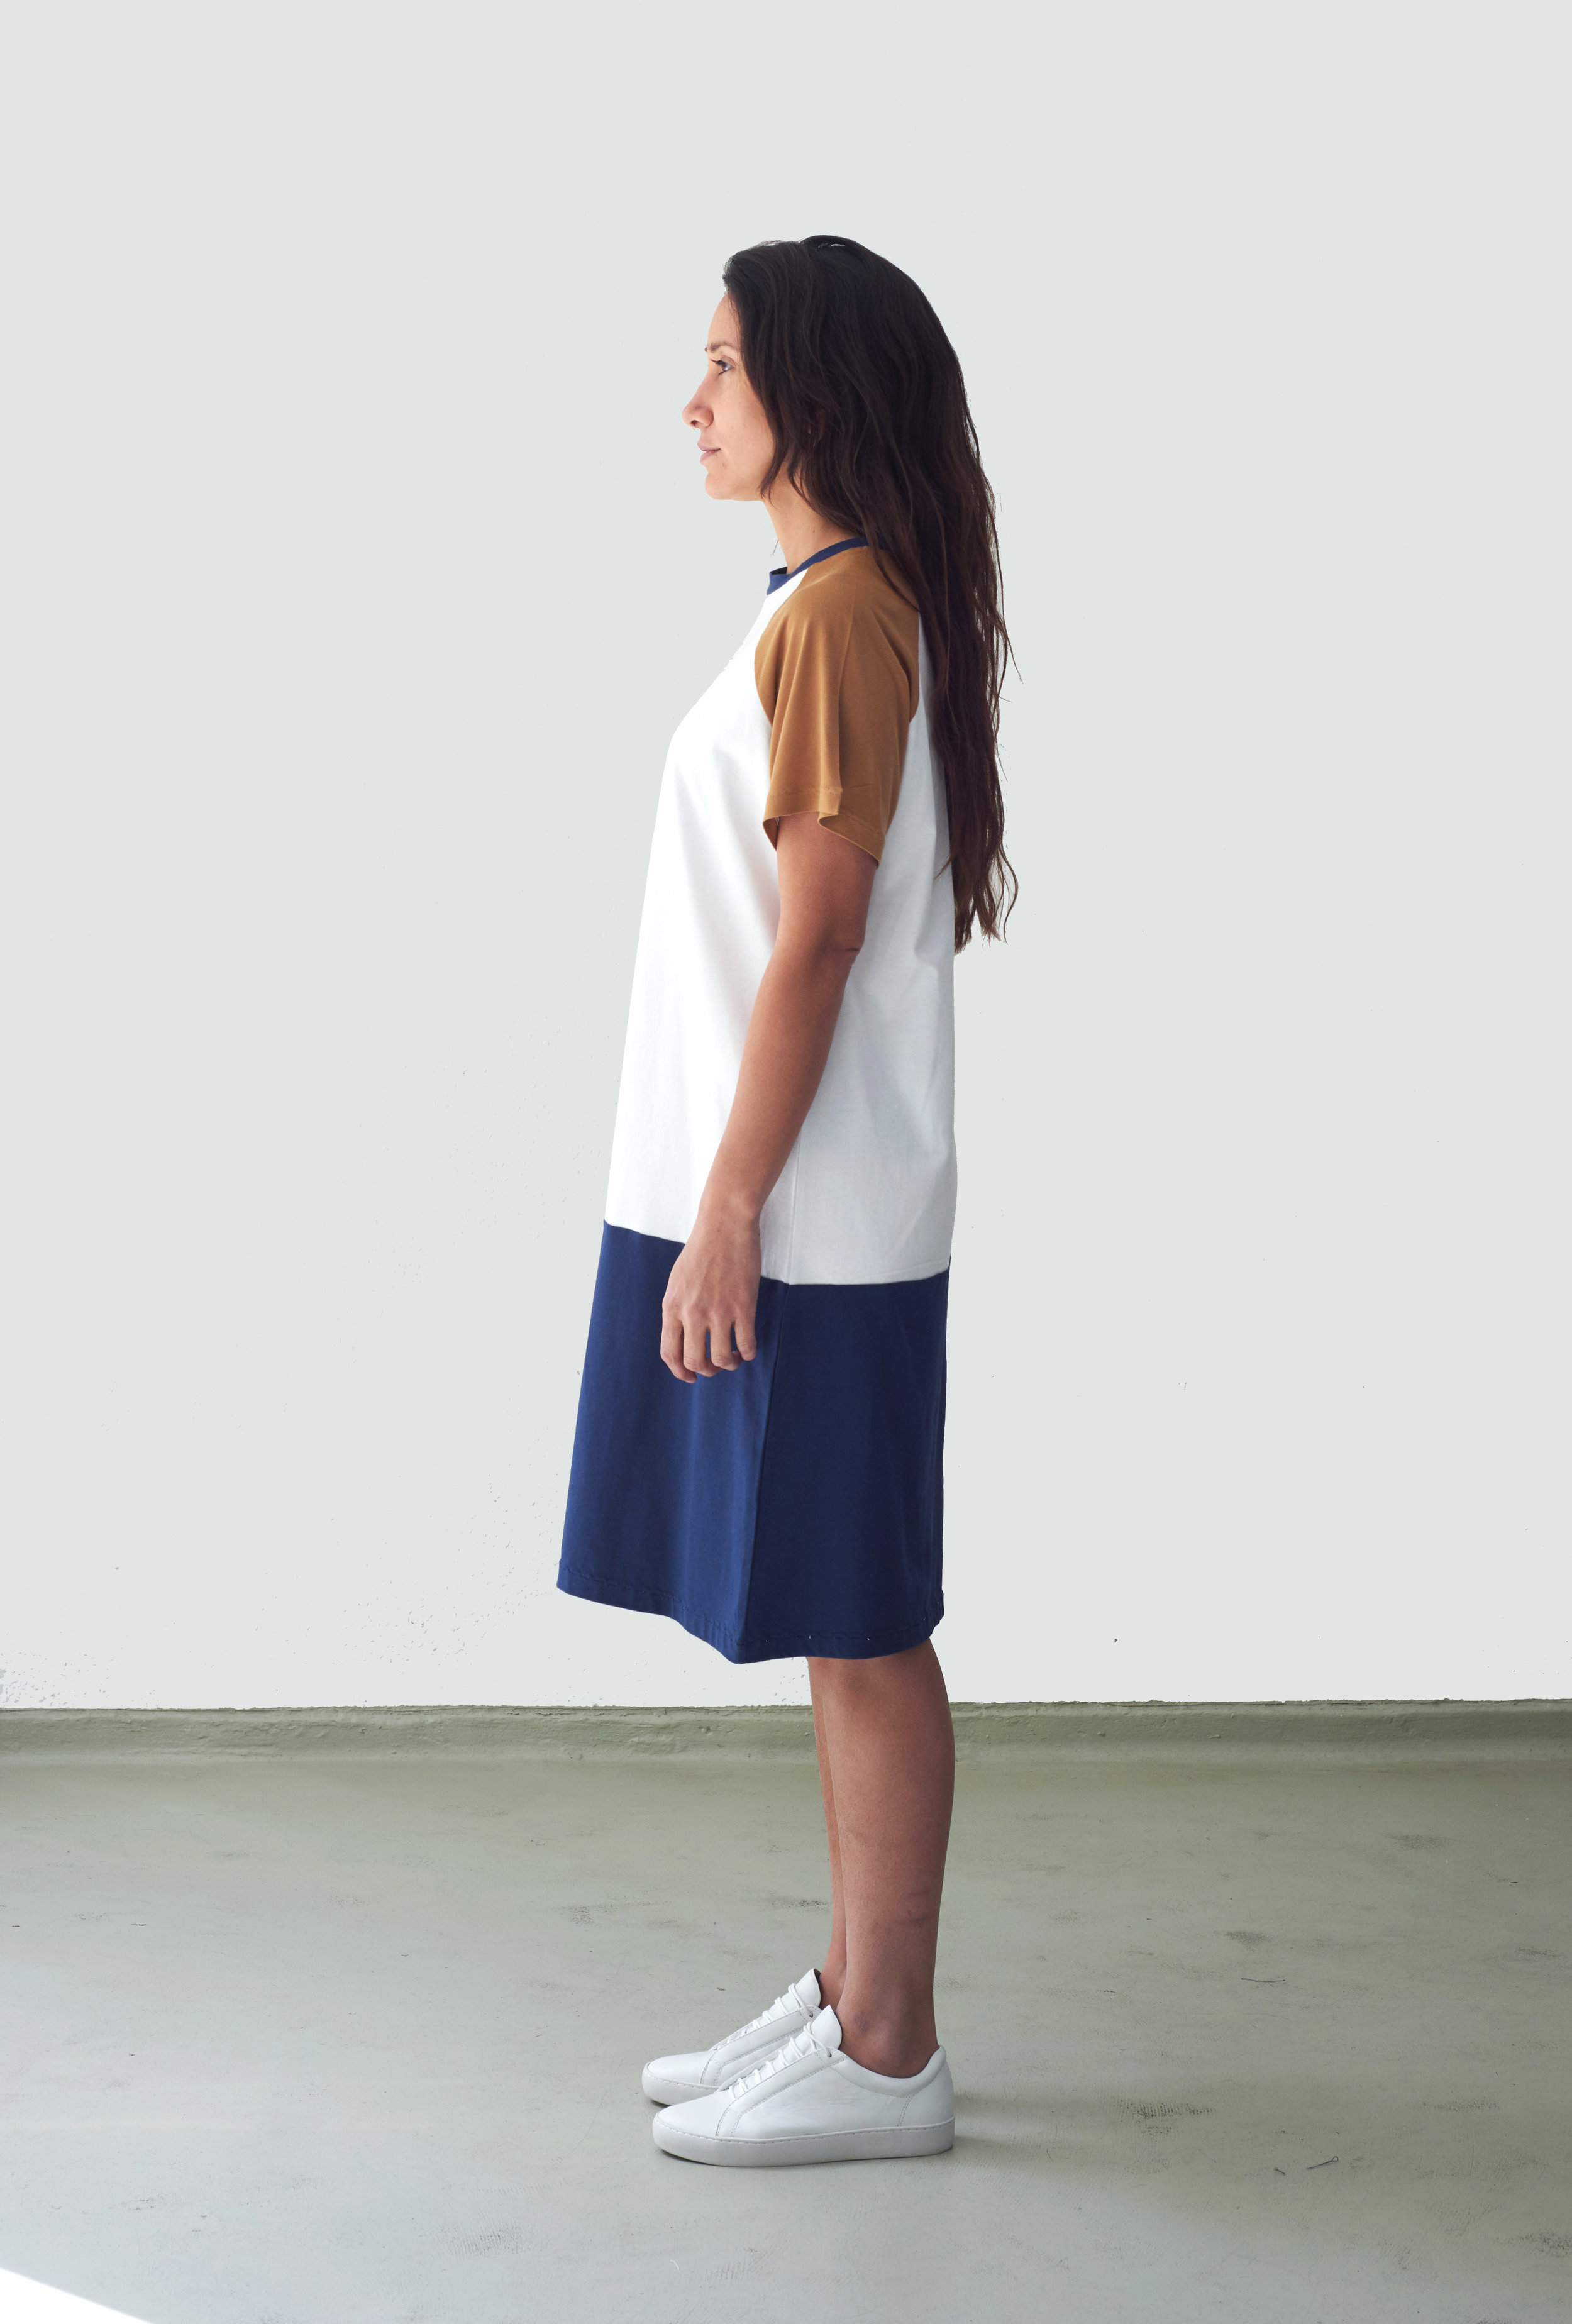 colour block dress2.jpg